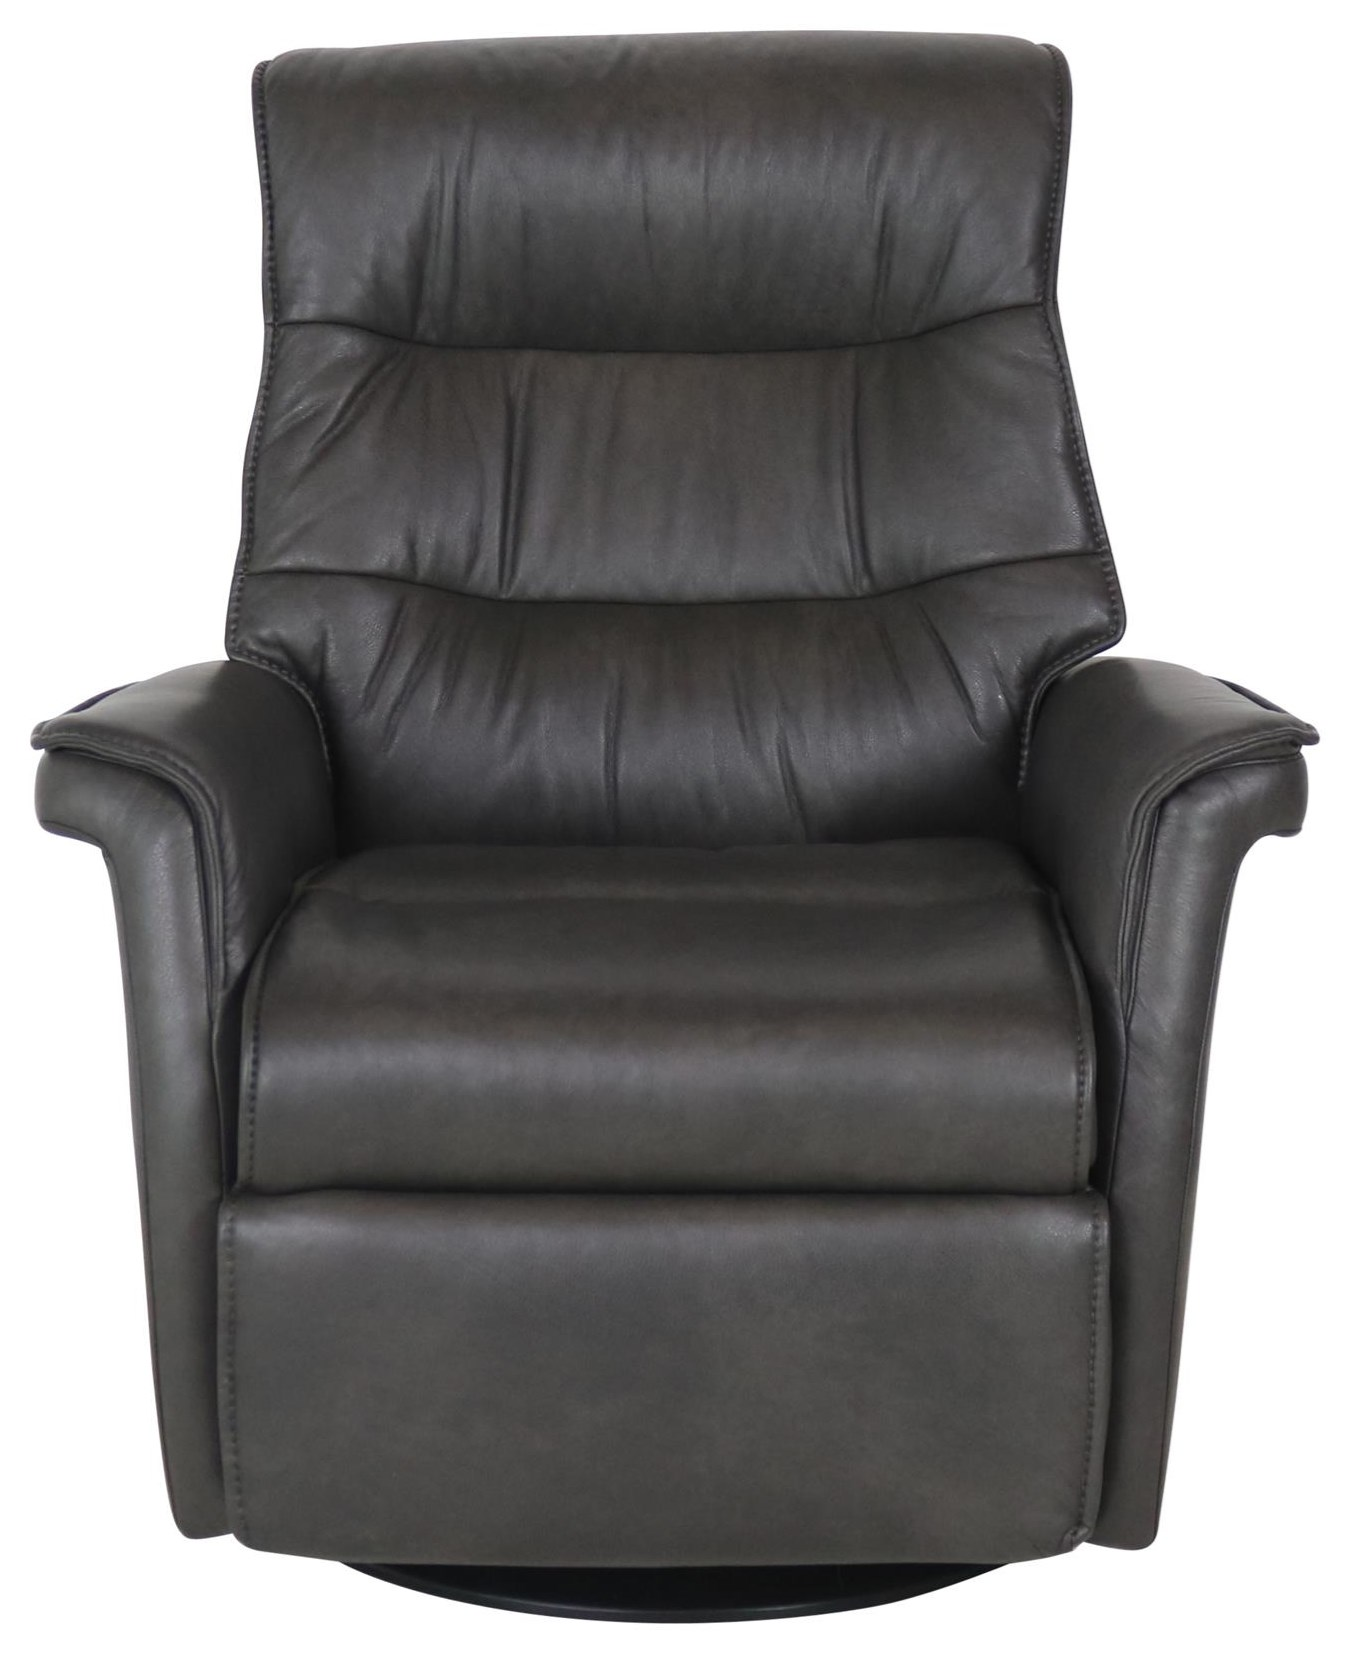 Recliners Swivel Recliner by IMG Norway at Sprintz Furniture